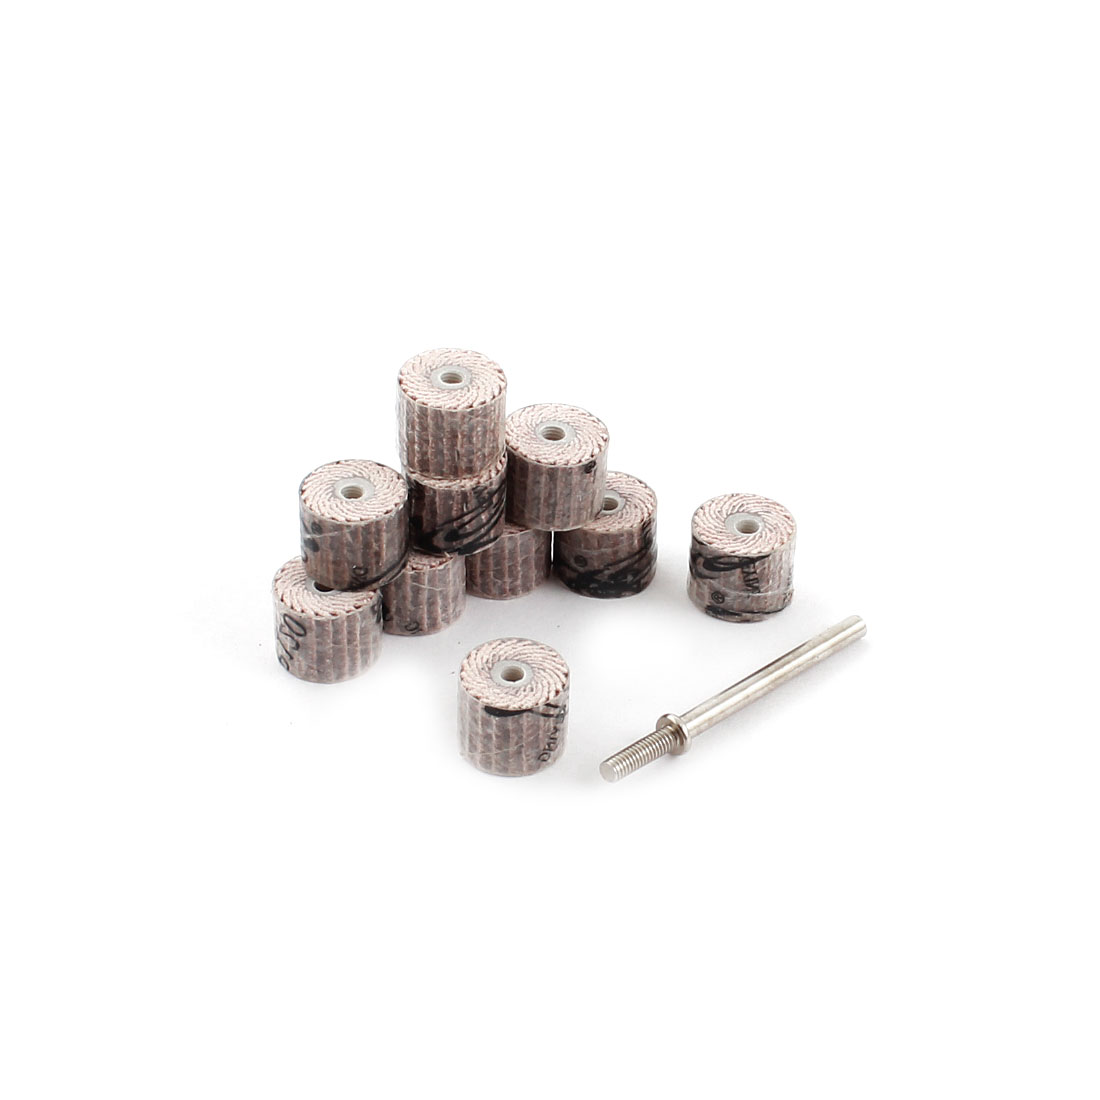 10 Pcs 120 Grit 12mm Dia Rosybrown Grinding Polishing Tool Flap Wheel Heads